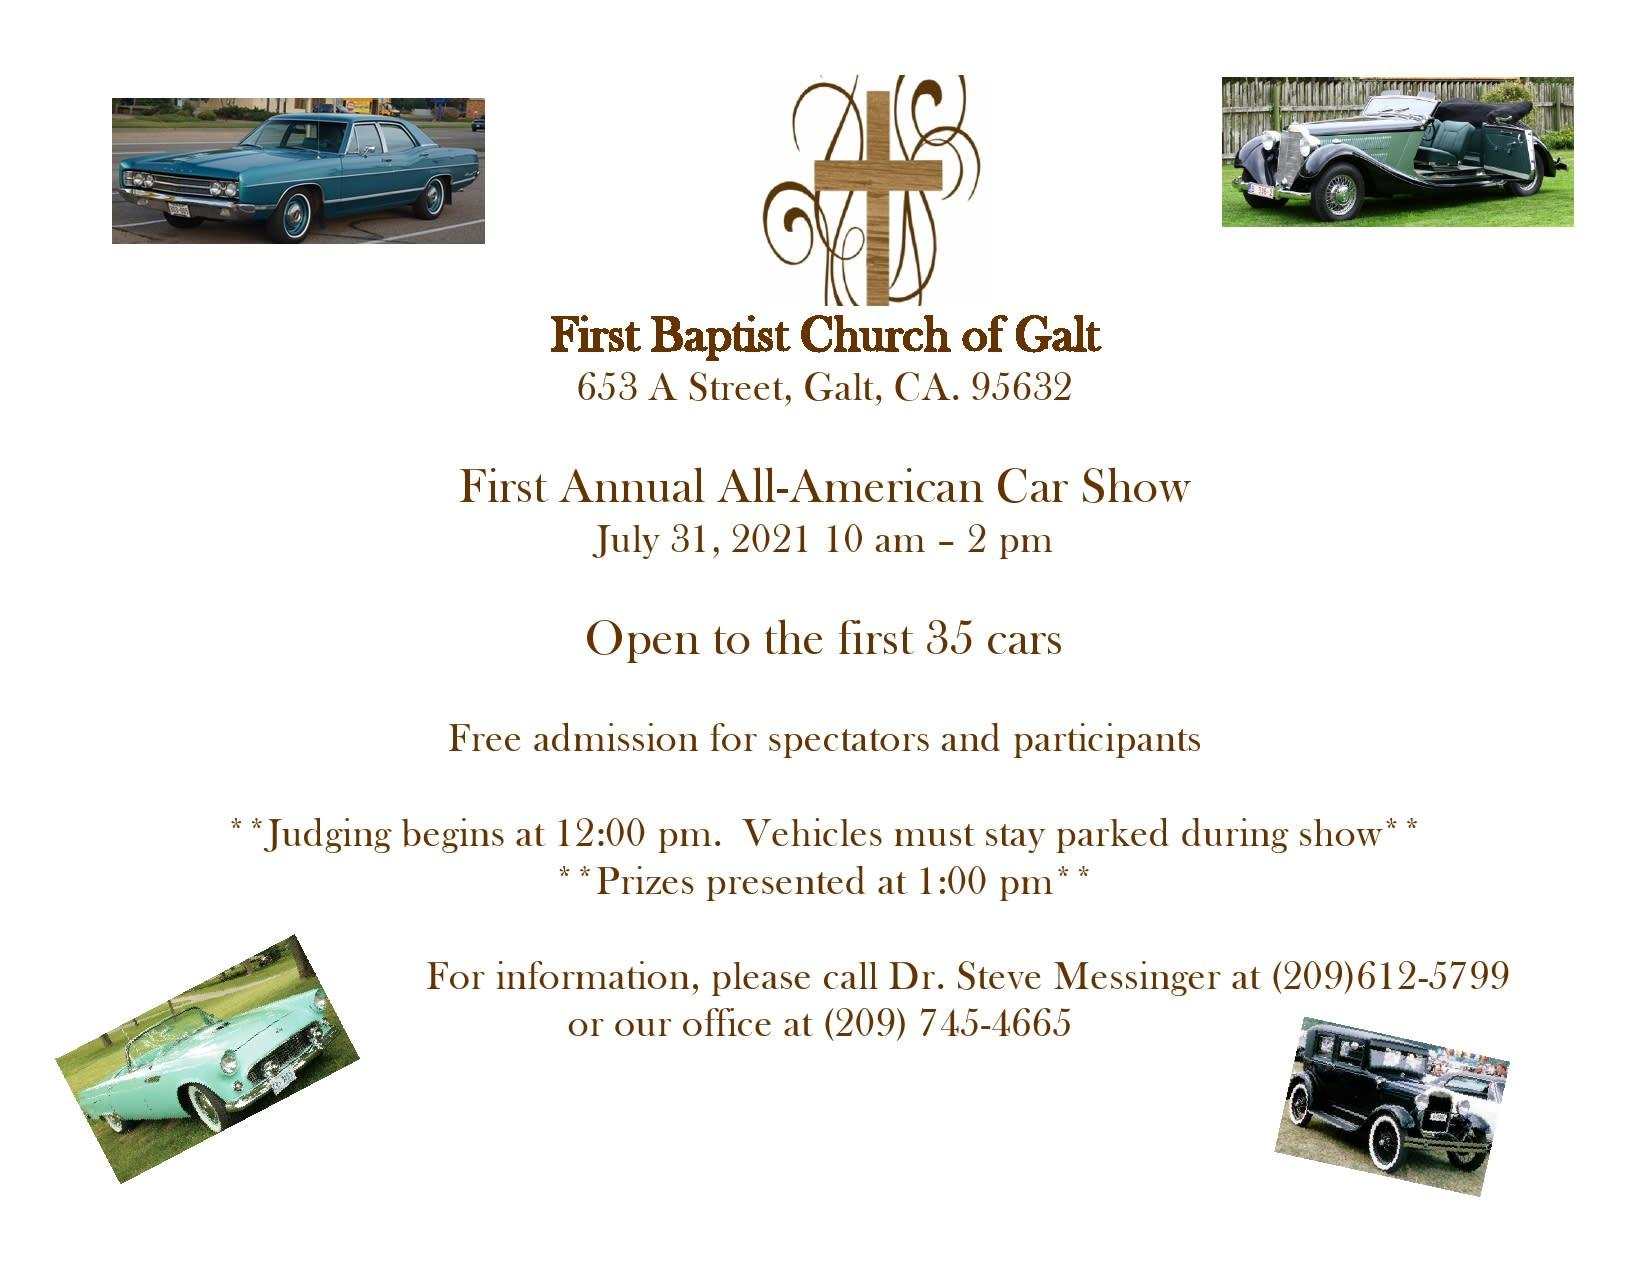 First Baptist Church of Galt's First Annual All-American Car Show flyer - July 31, 2021